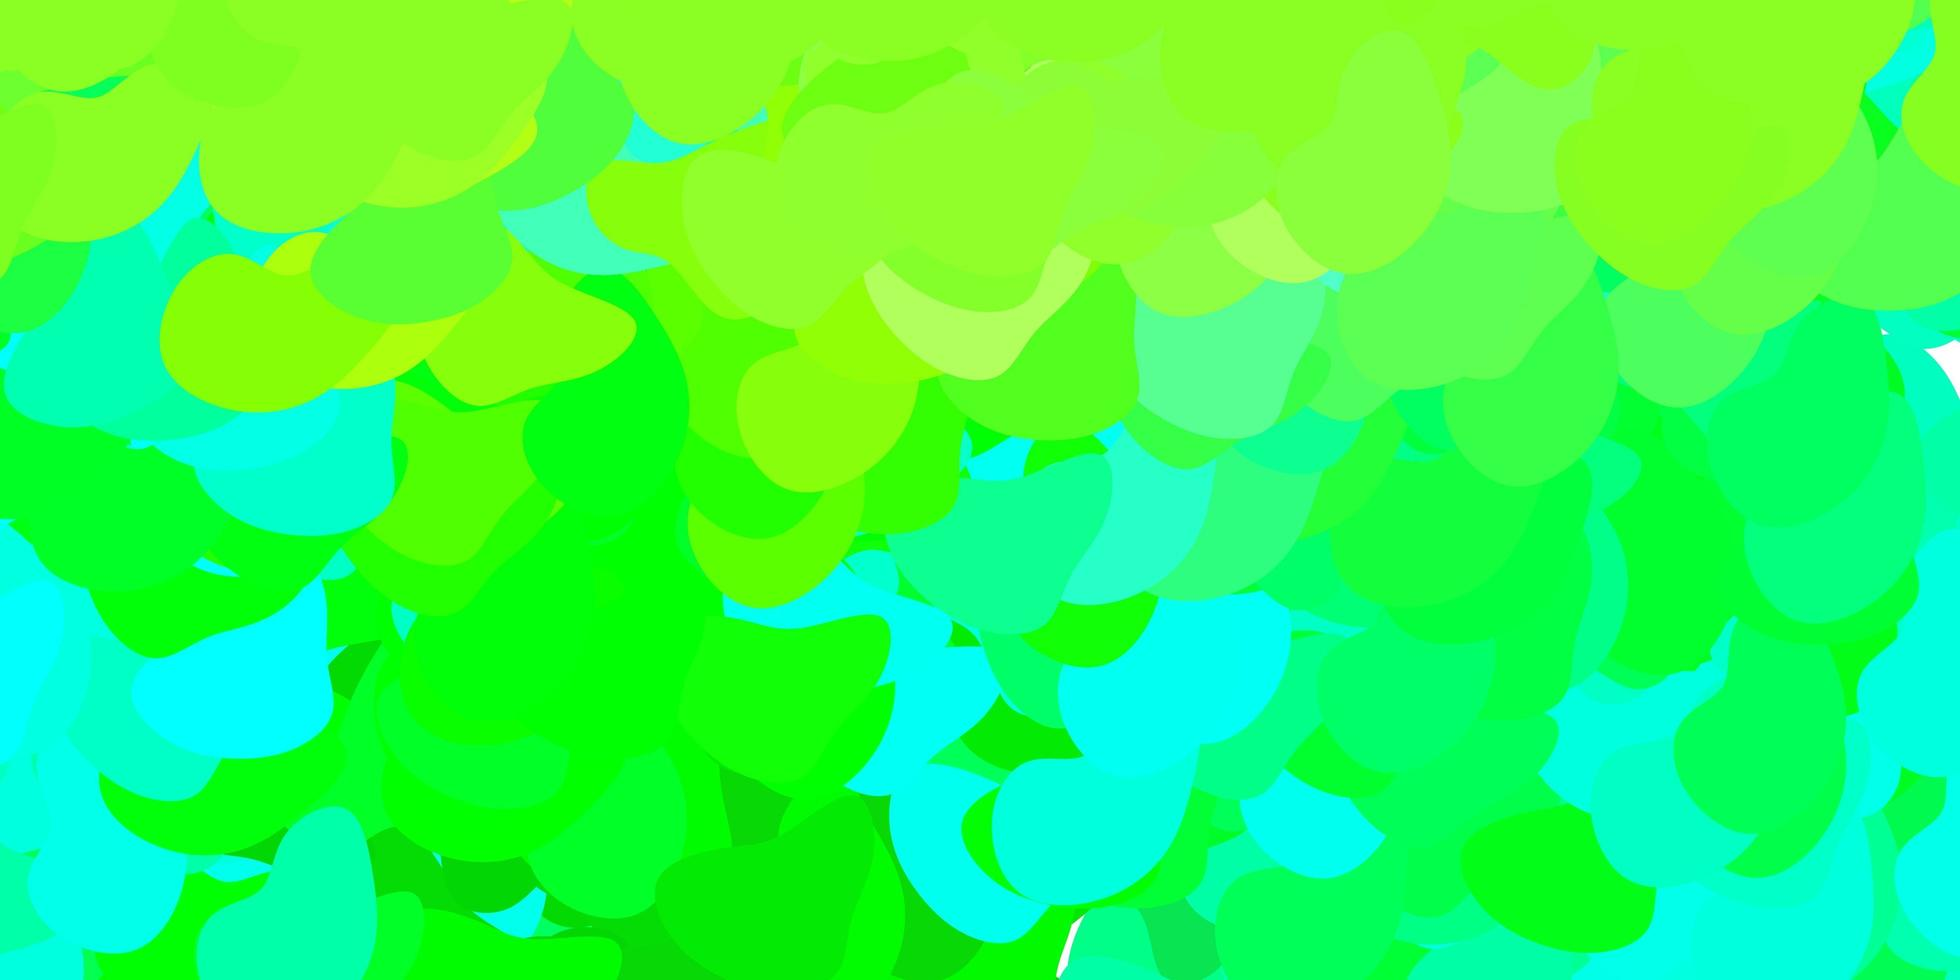 Light blue, green template with abstract forms. vector